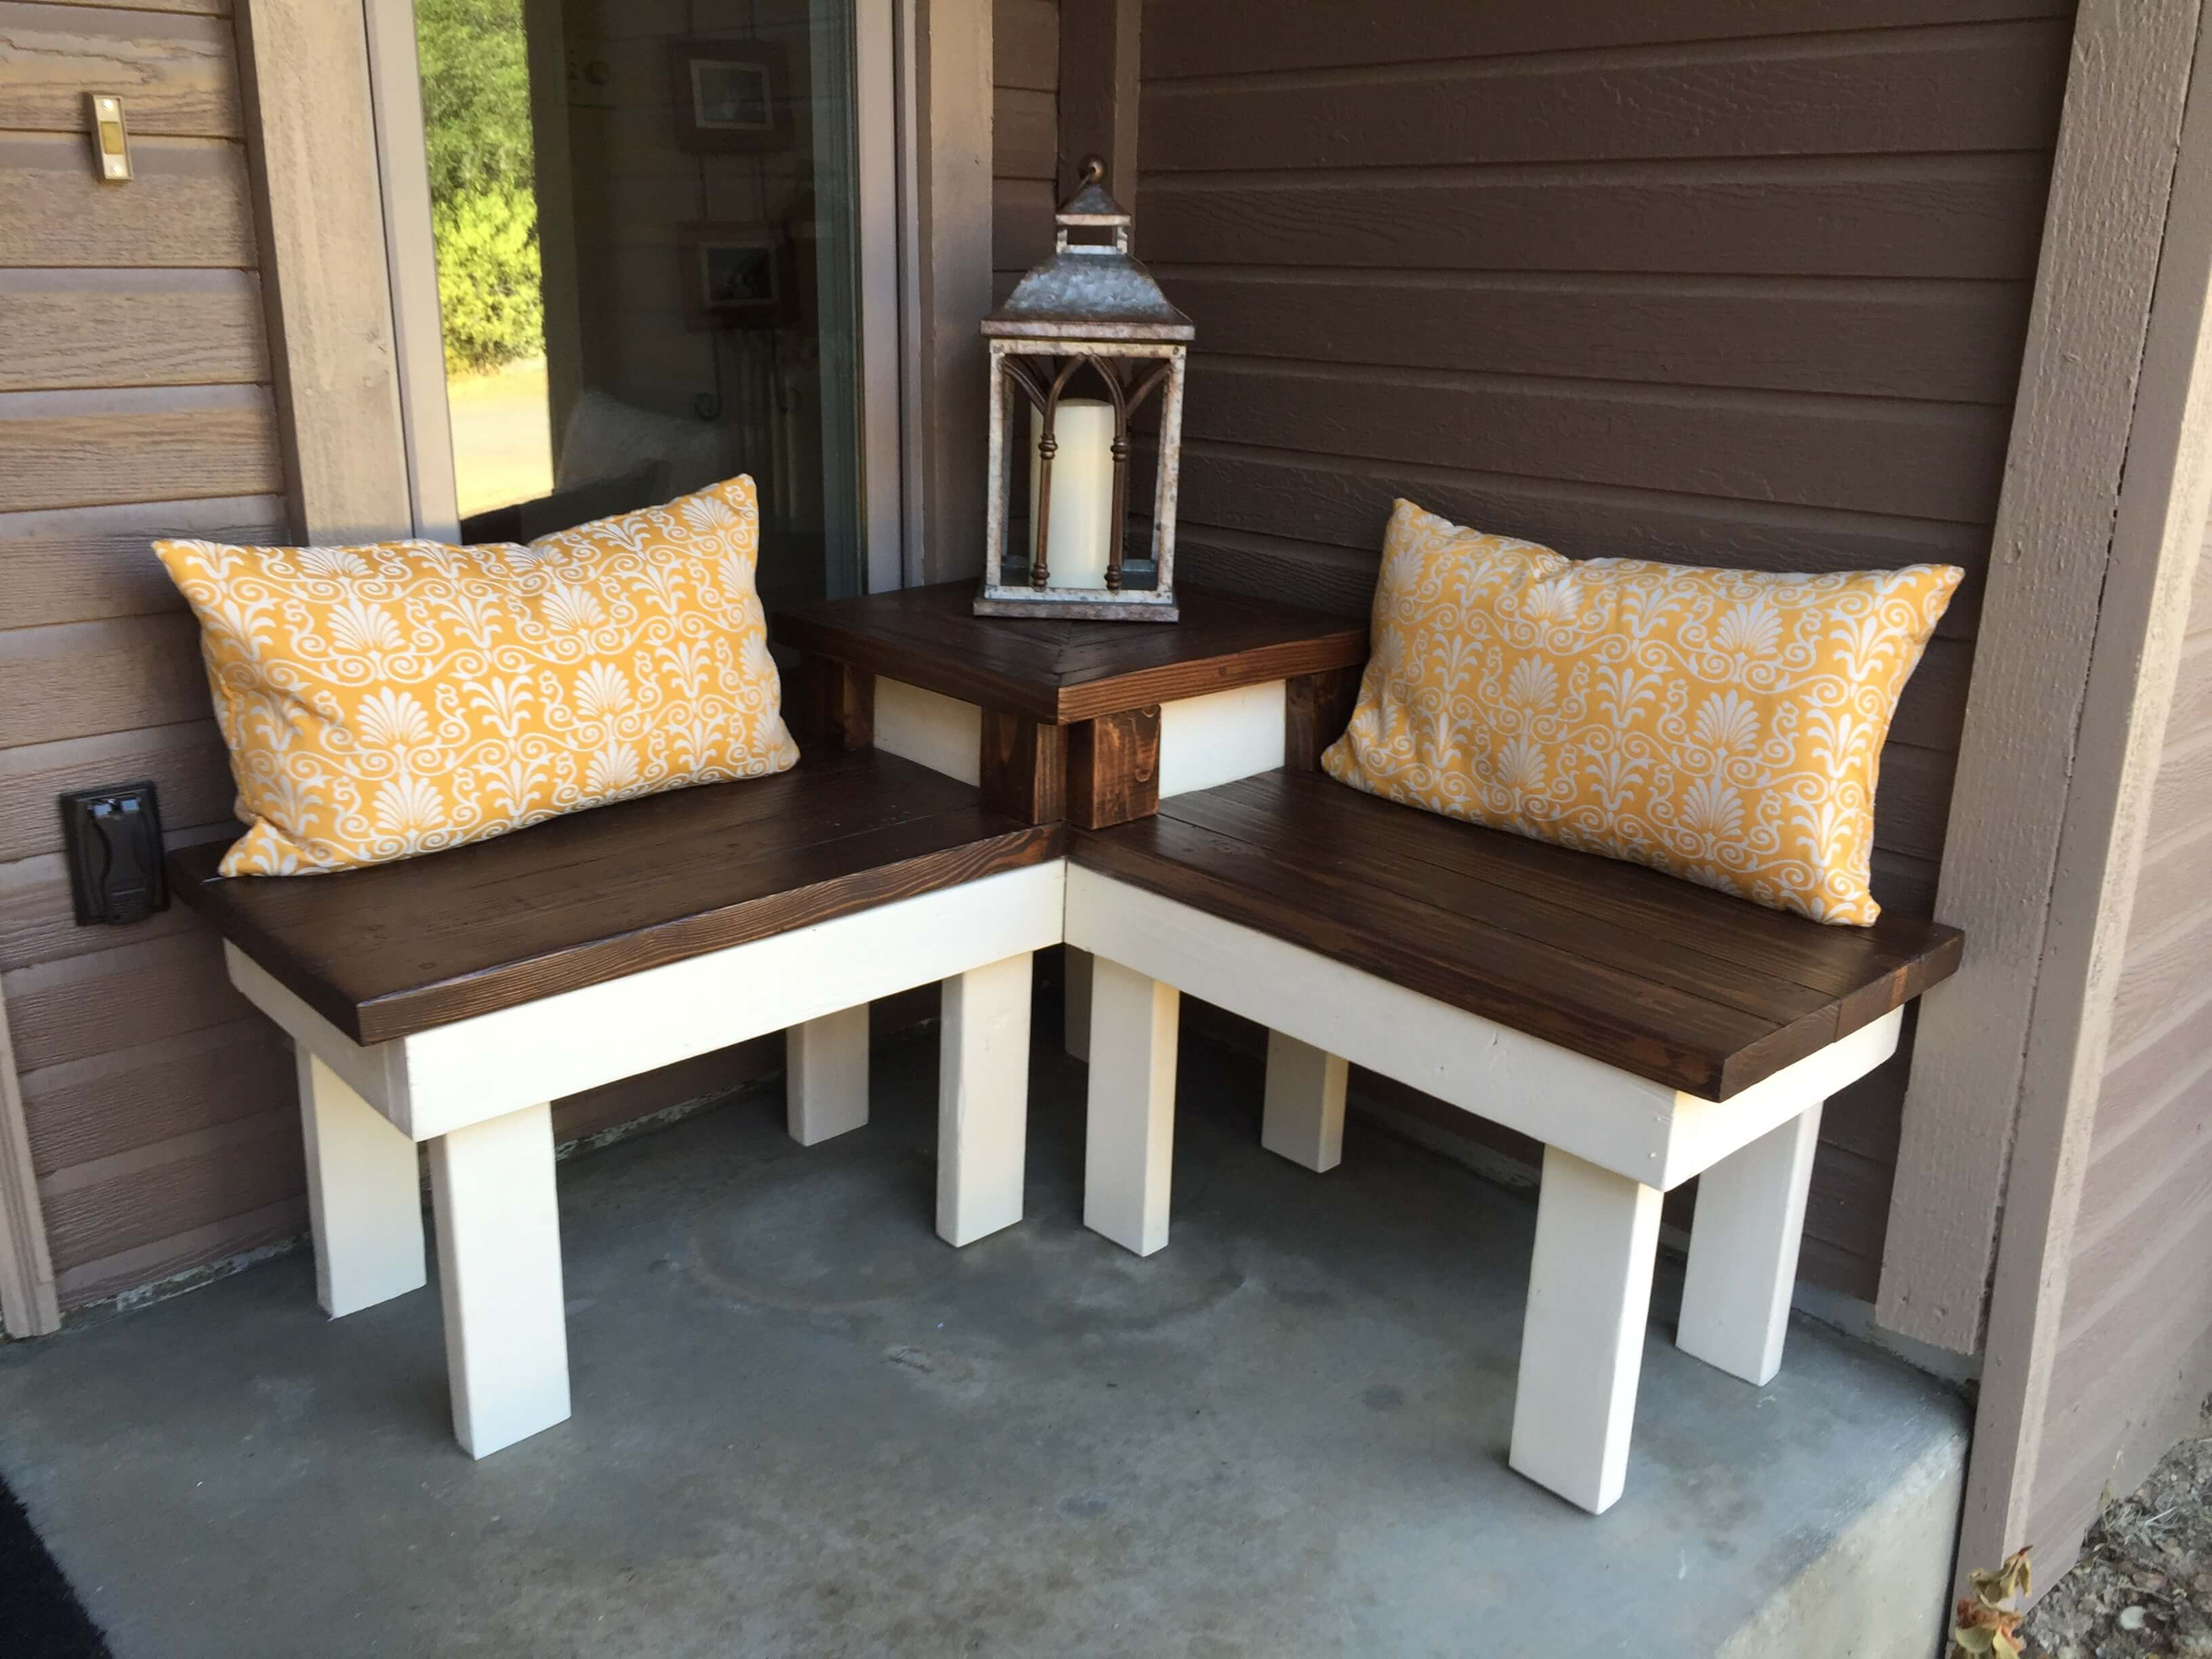 Newport Nuance DIY Corner Bench With Table